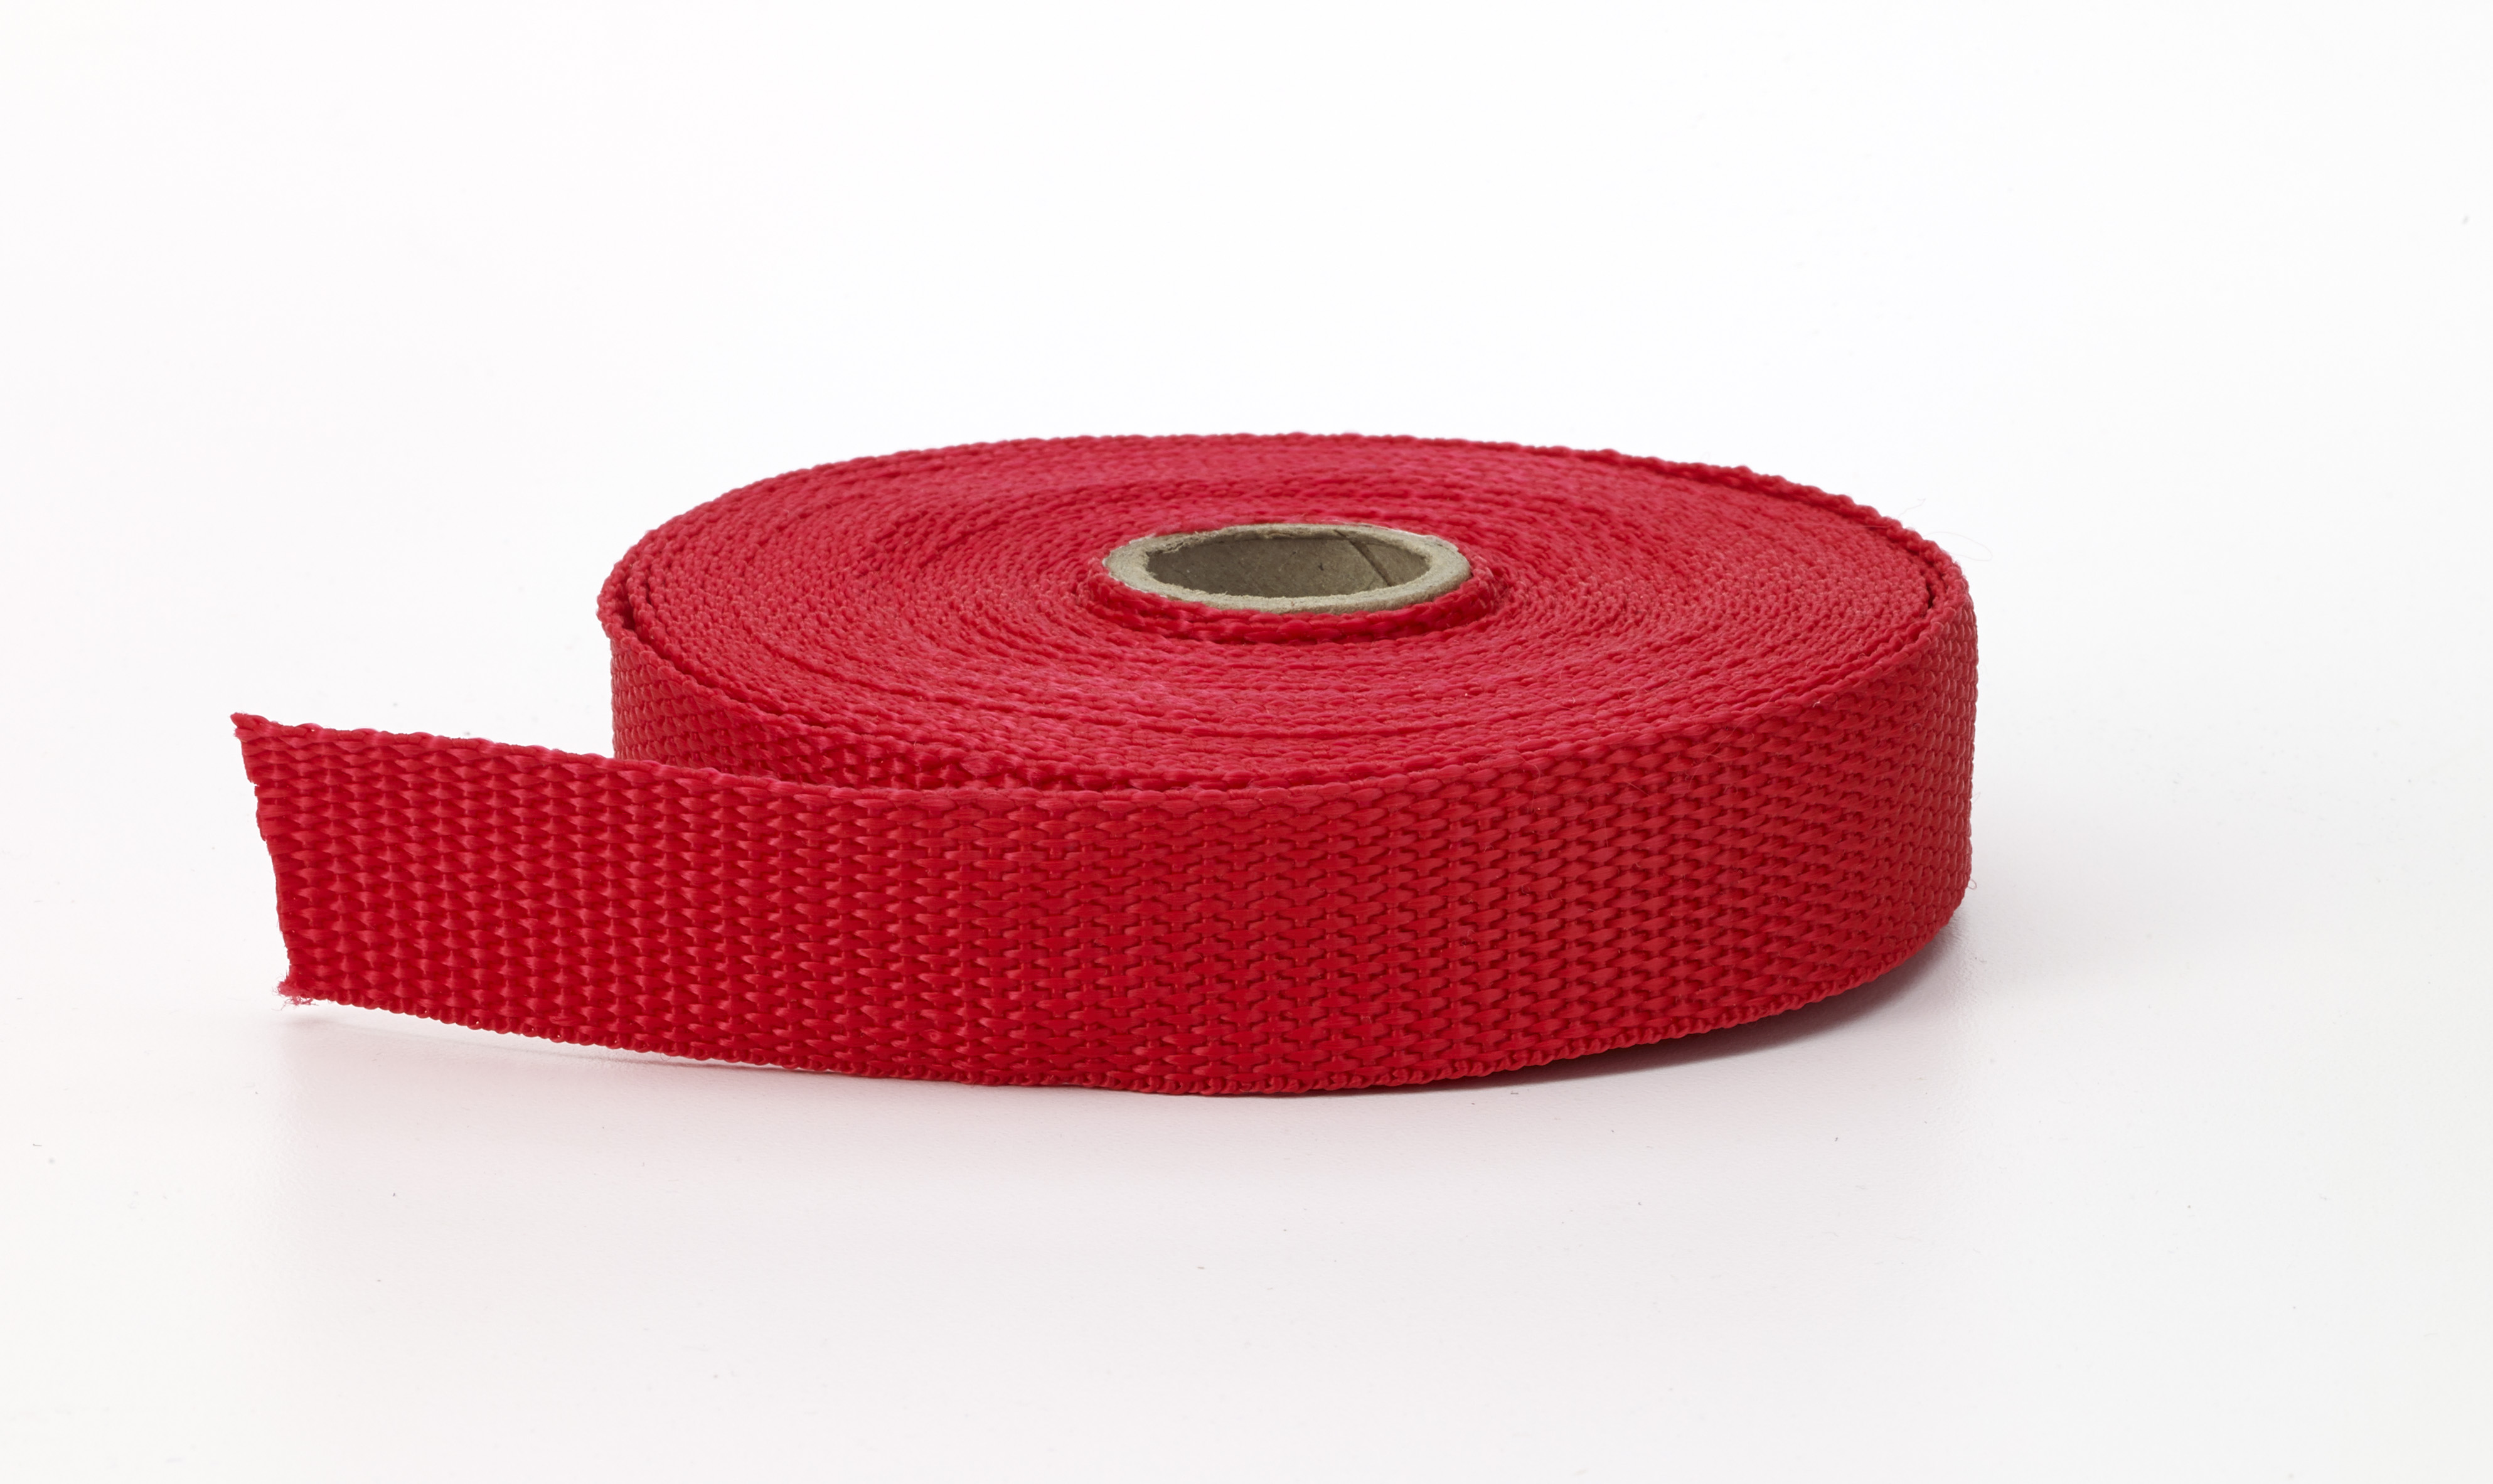 M2020-212-2-10, Polypropylene webbing, 2 in Wide, 10 yds, Red, Mutual Industries